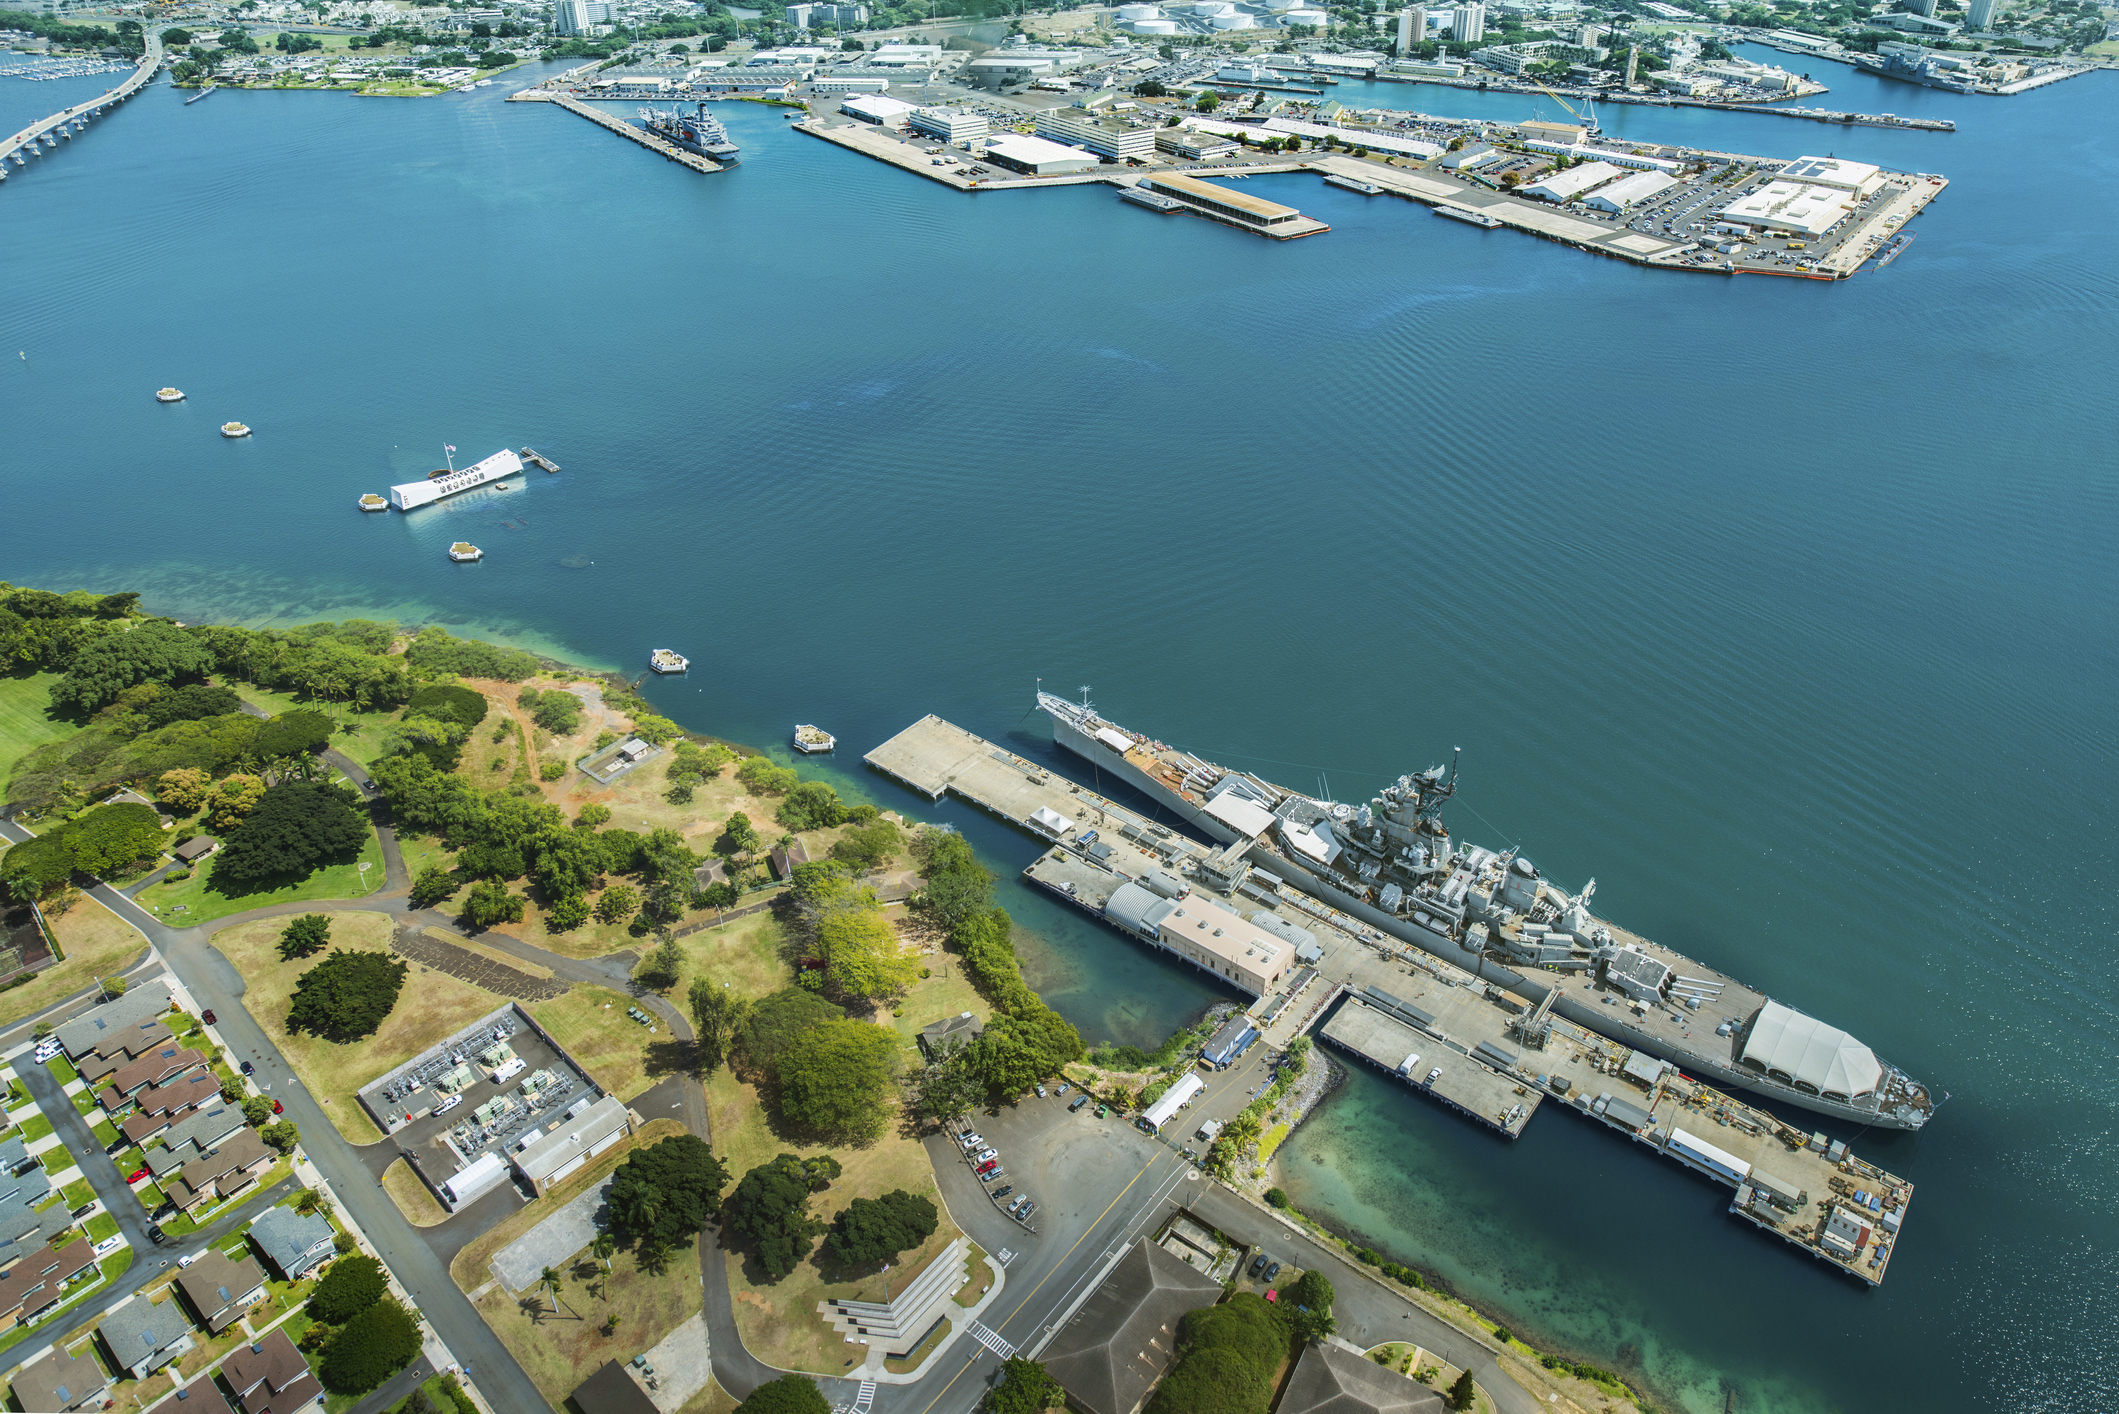 Article image for Three people dead after shooting at Pearl Harbor